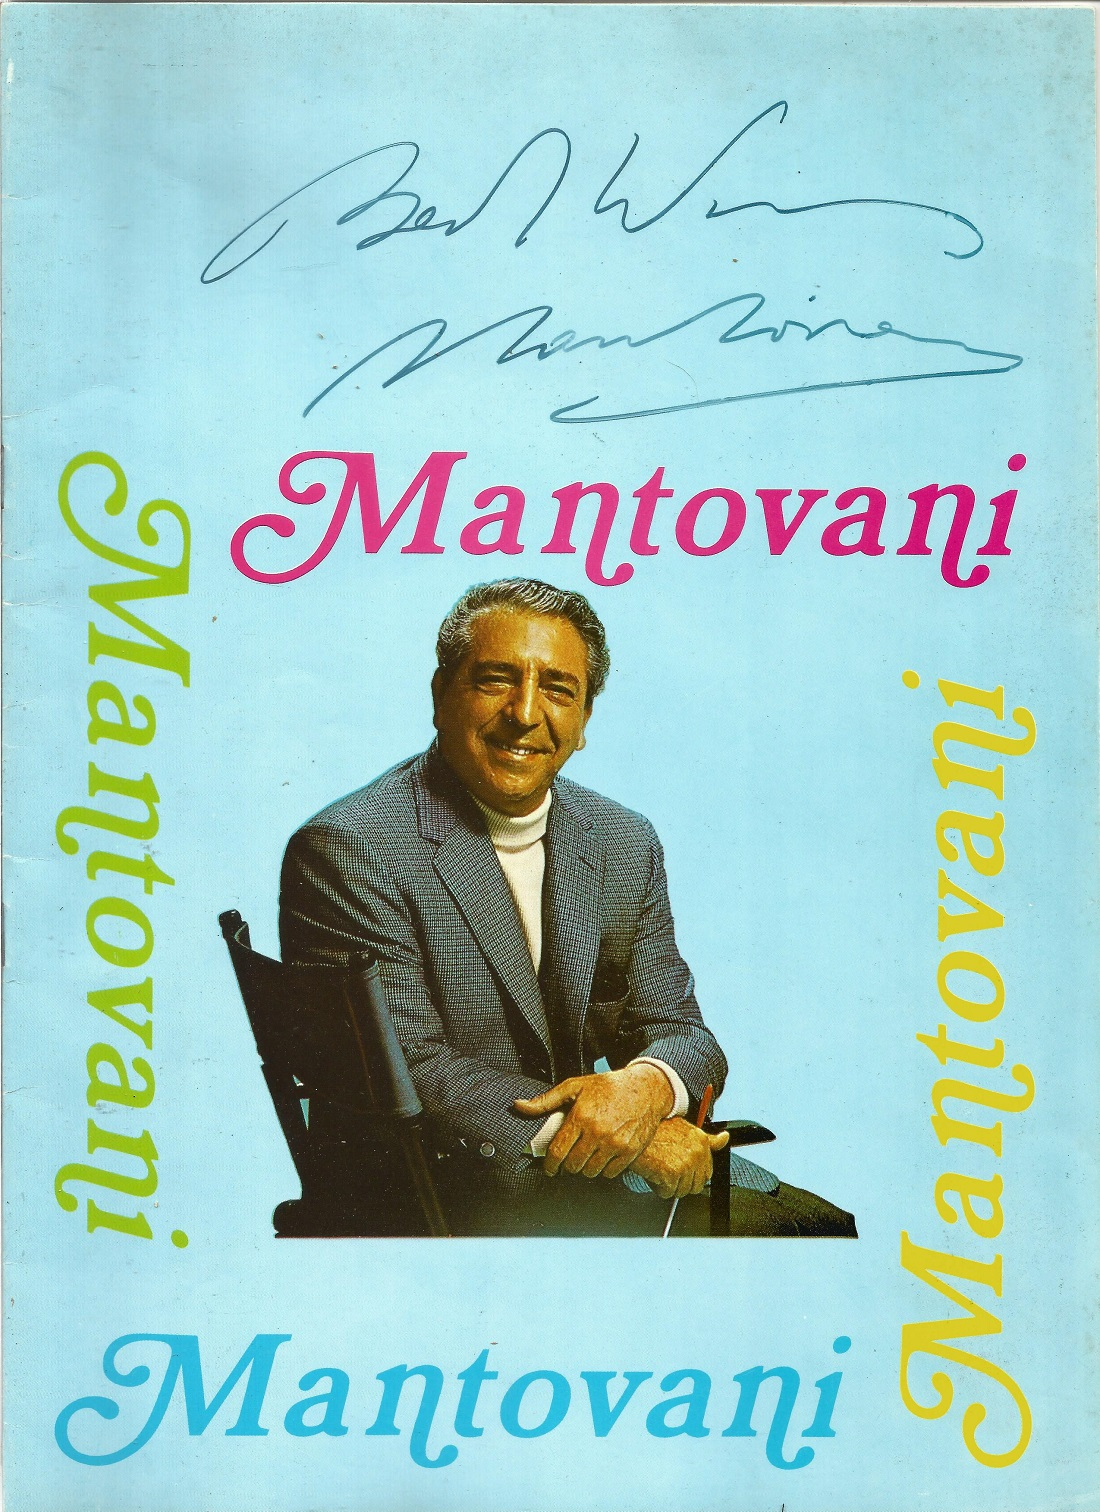 Signed Mantovani In House Brochure 1969 from a performance at Eastbourne Ticket stubs & Decca - Image 2 of 4